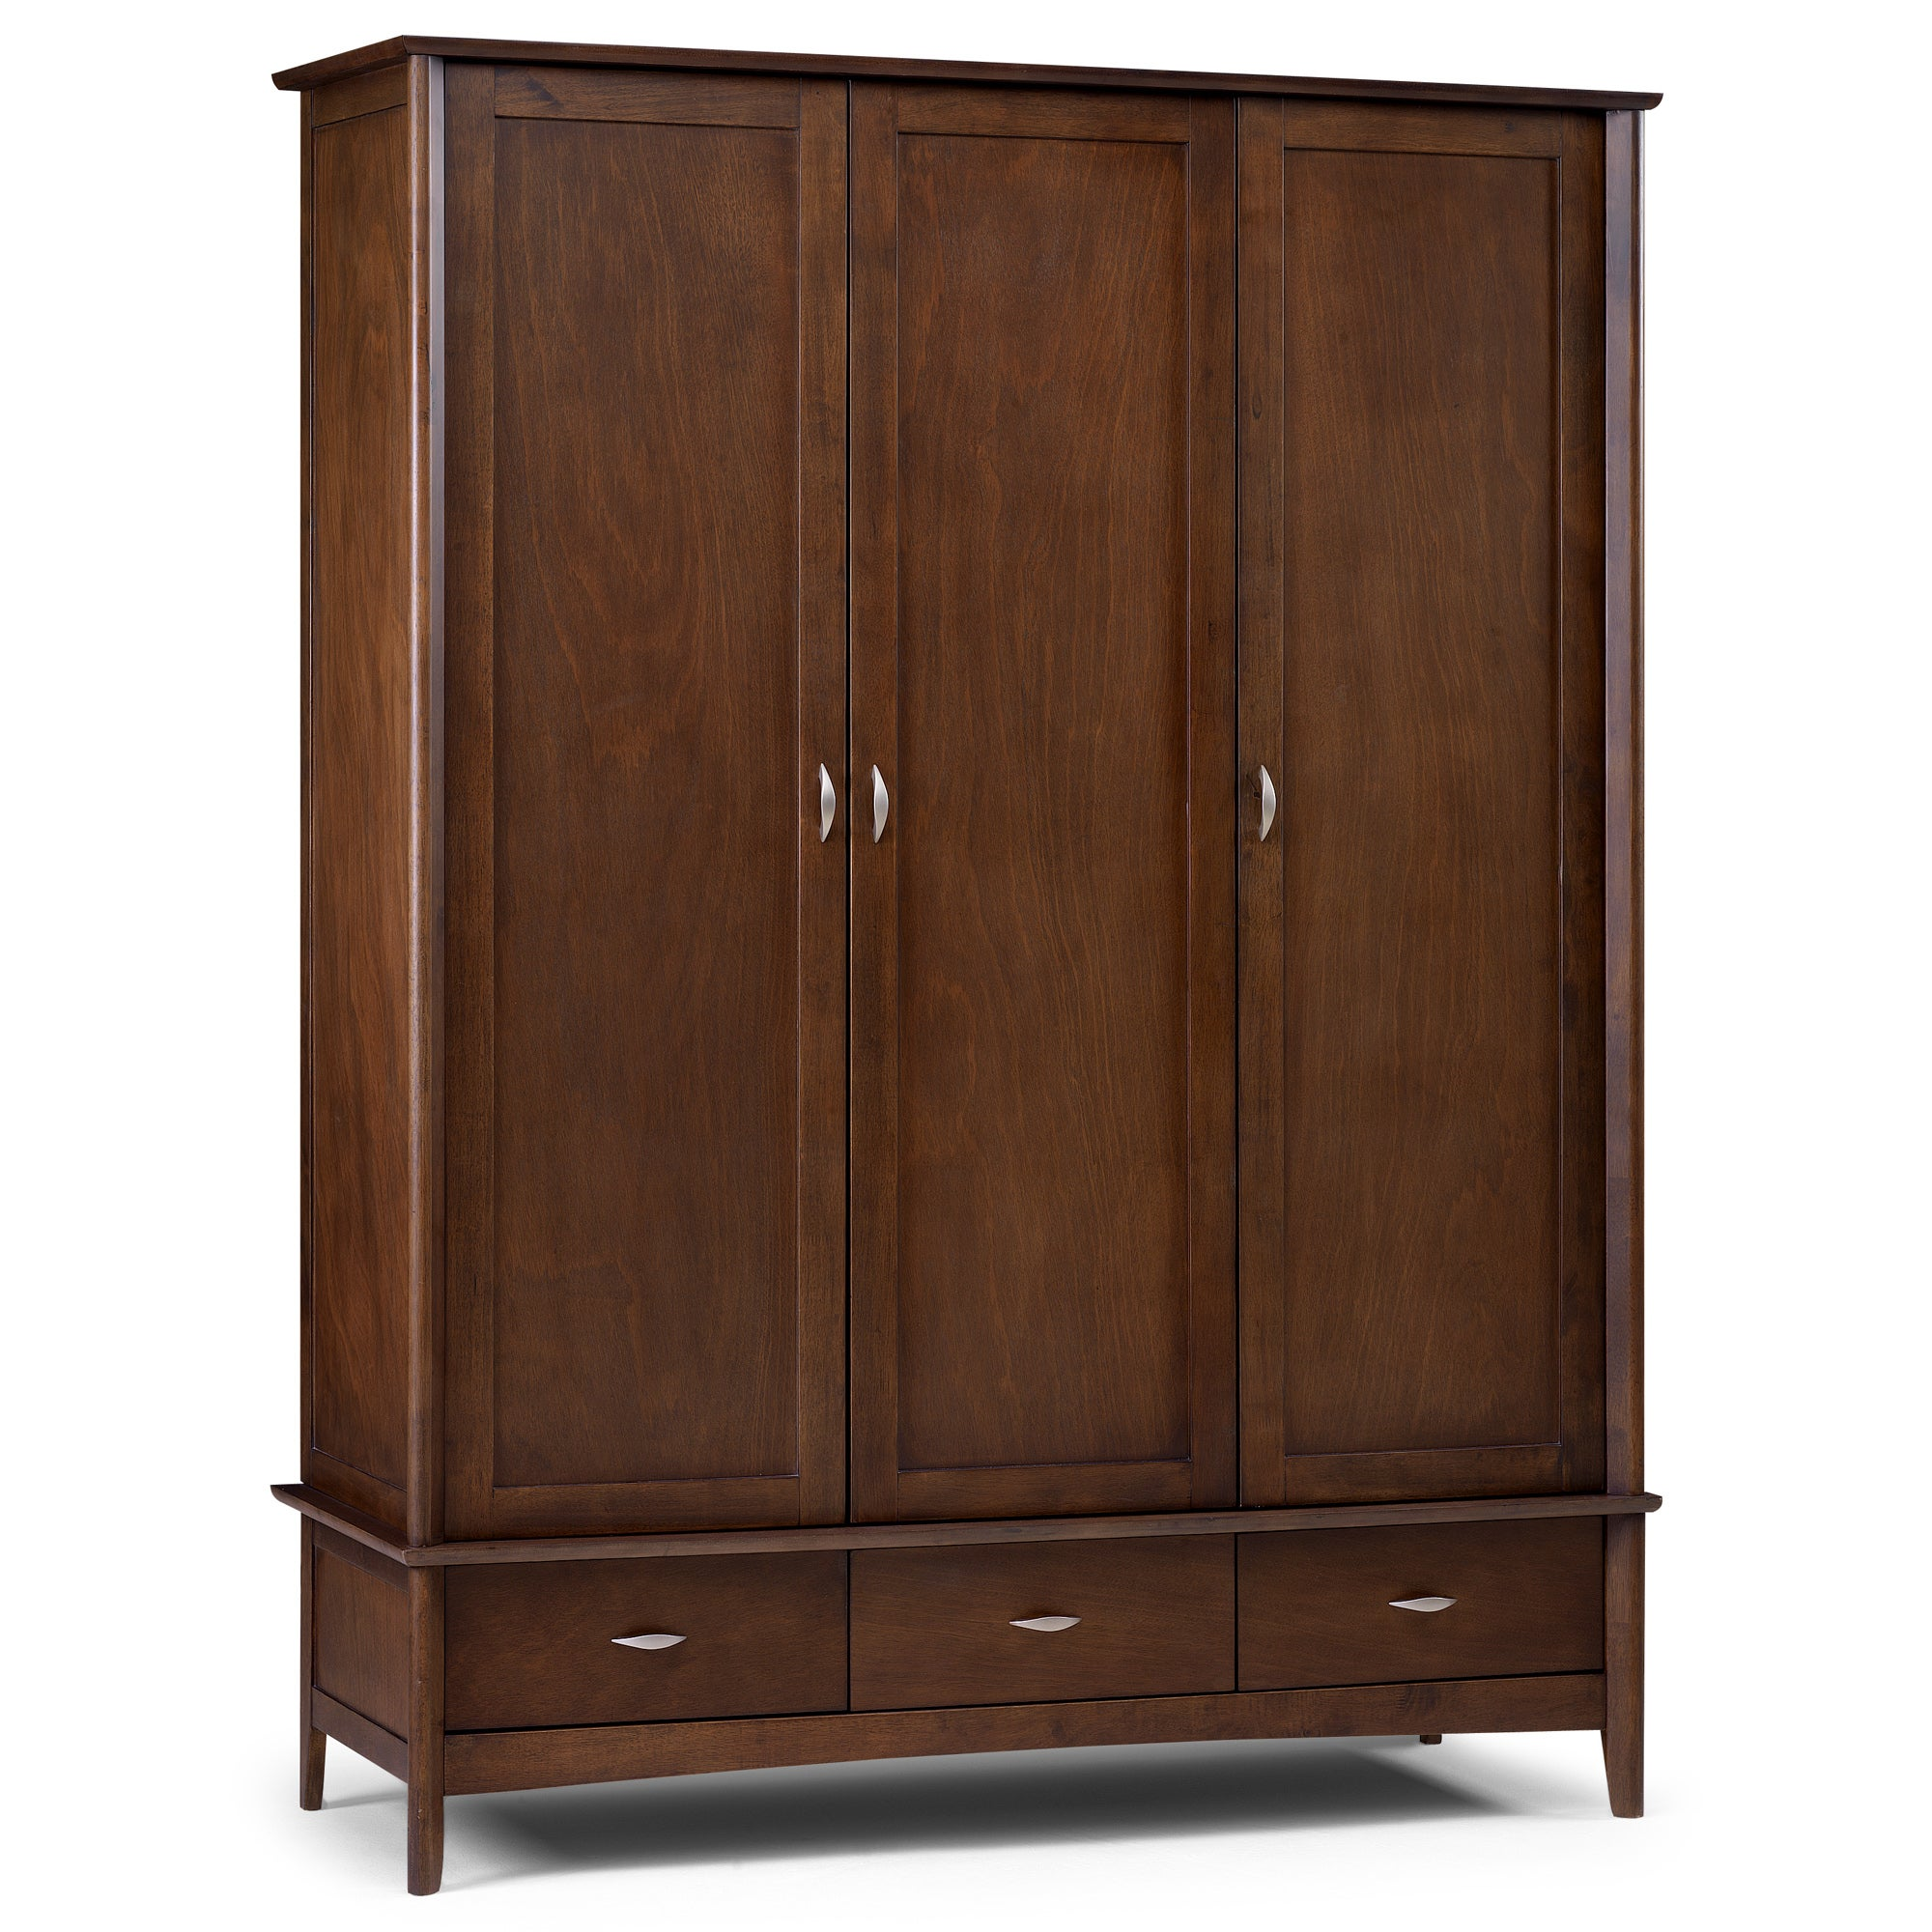 Monet Dark Wood Triple Wardrobe